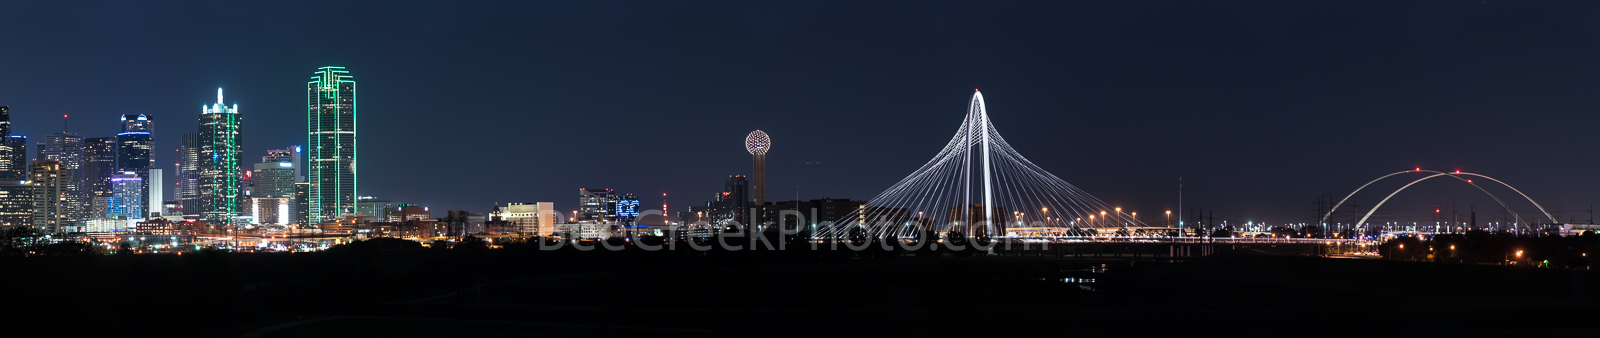 Dallas, skyline, view, Margaret McDermott Bridge, Margaret Hunt Hill Bridge, cityscape, downtown, iconic, Reunion Tower, bank of america plaza,Renaissance Tower, Comercia Bank Tower, Omin Hotel, high